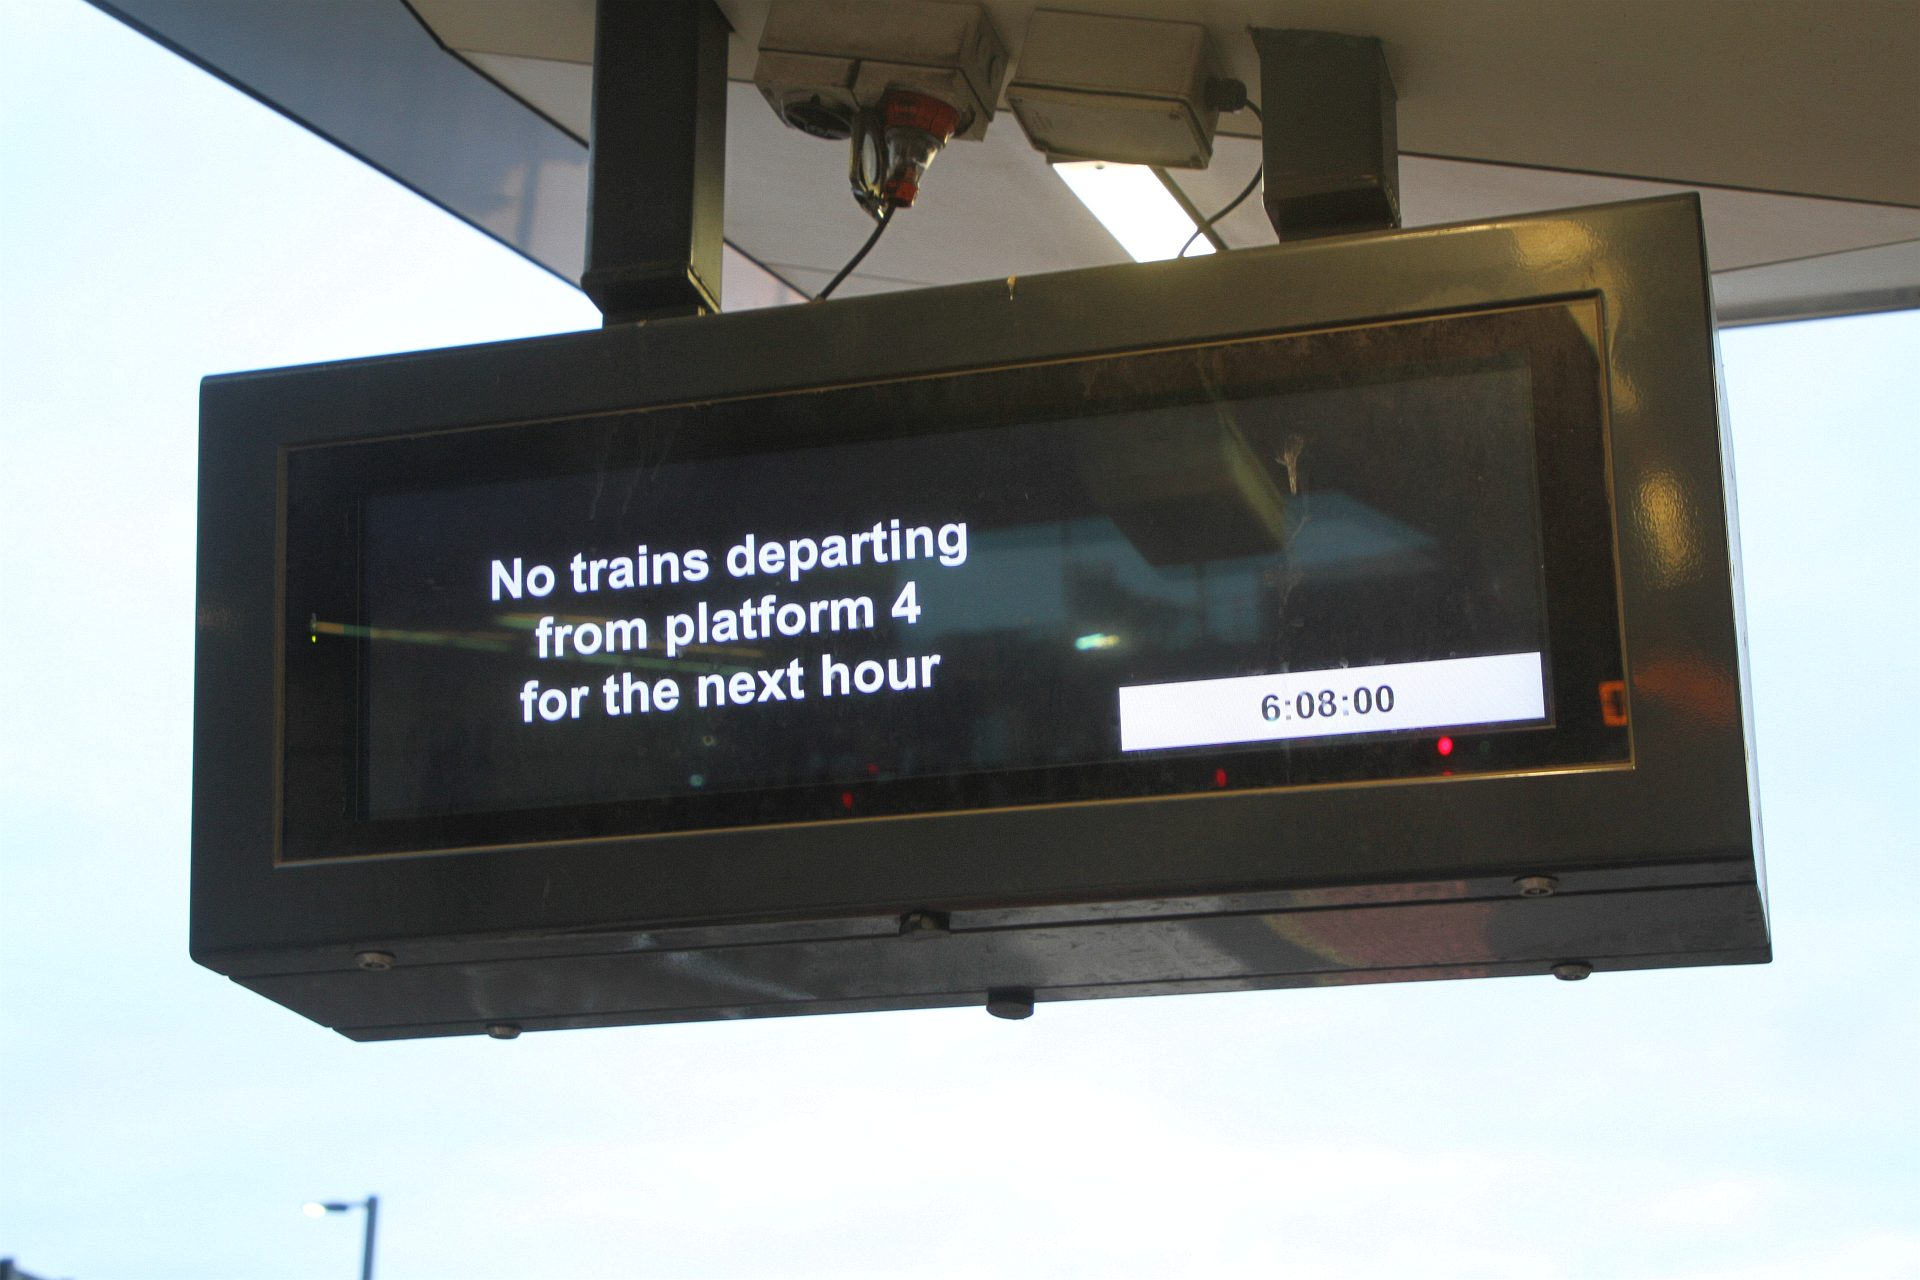 No trains departing platform 4 for the next hour' message on